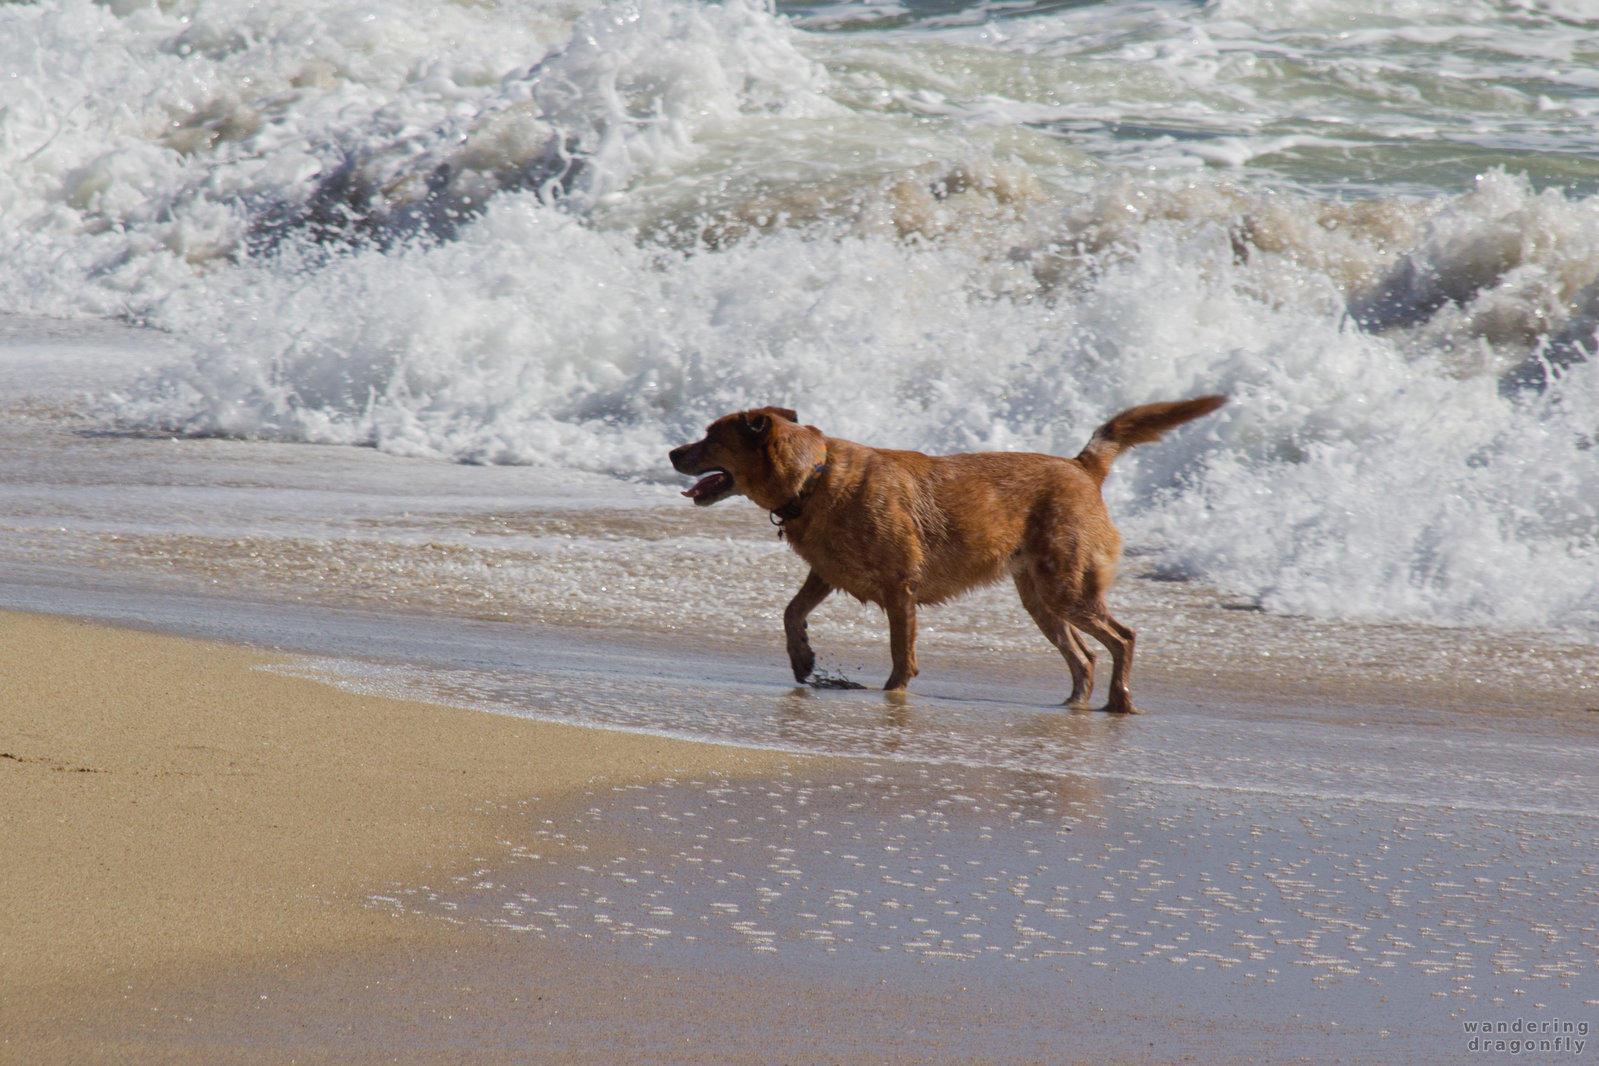 Dog playing in the water -- beach, dog, ocean, playing